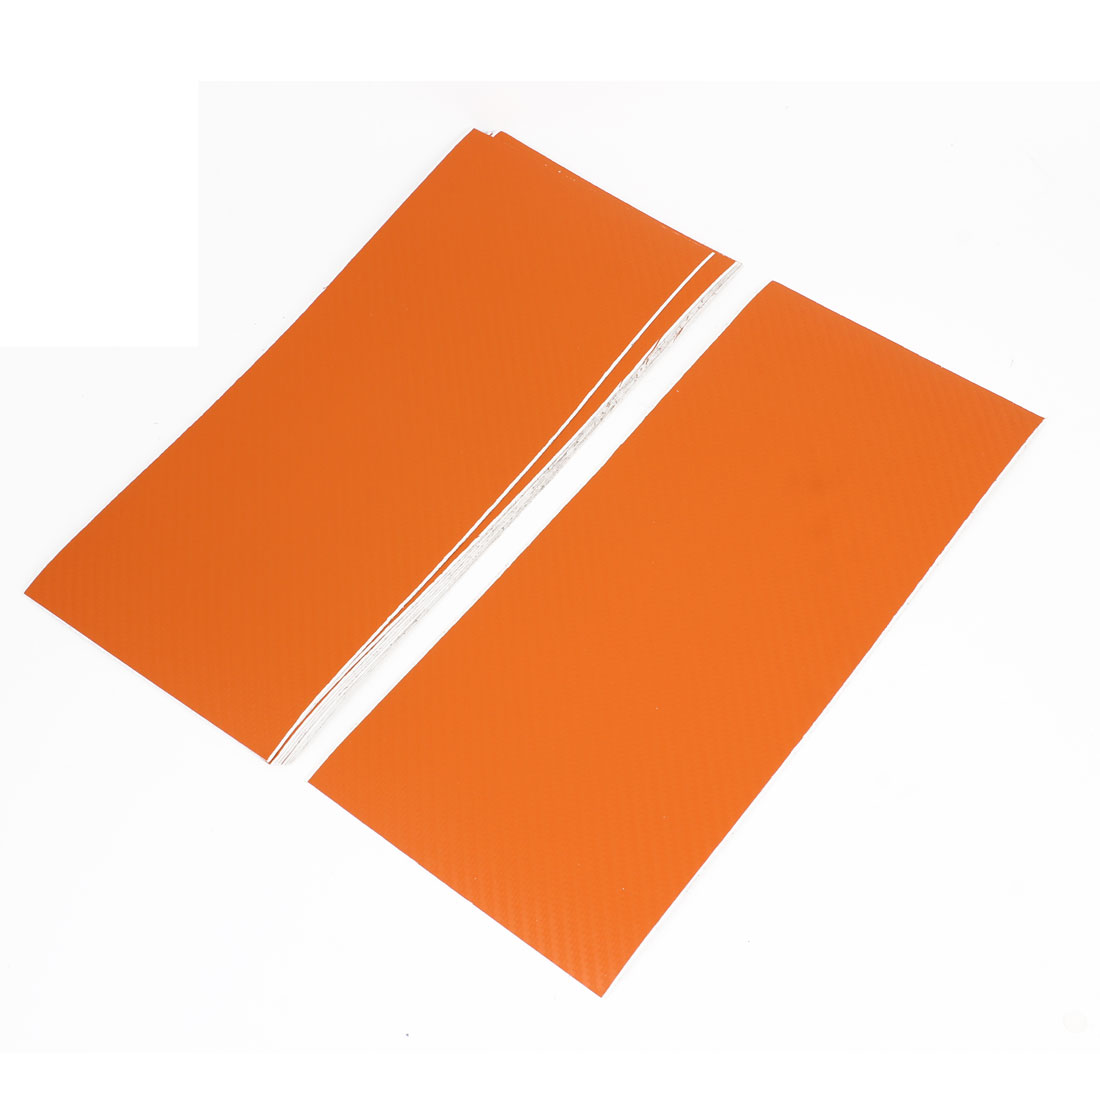 10pcs 300 x 133mm Adhesive Back Carbon Fiber Print Vinyl Protective Film Sticker Orange for Car